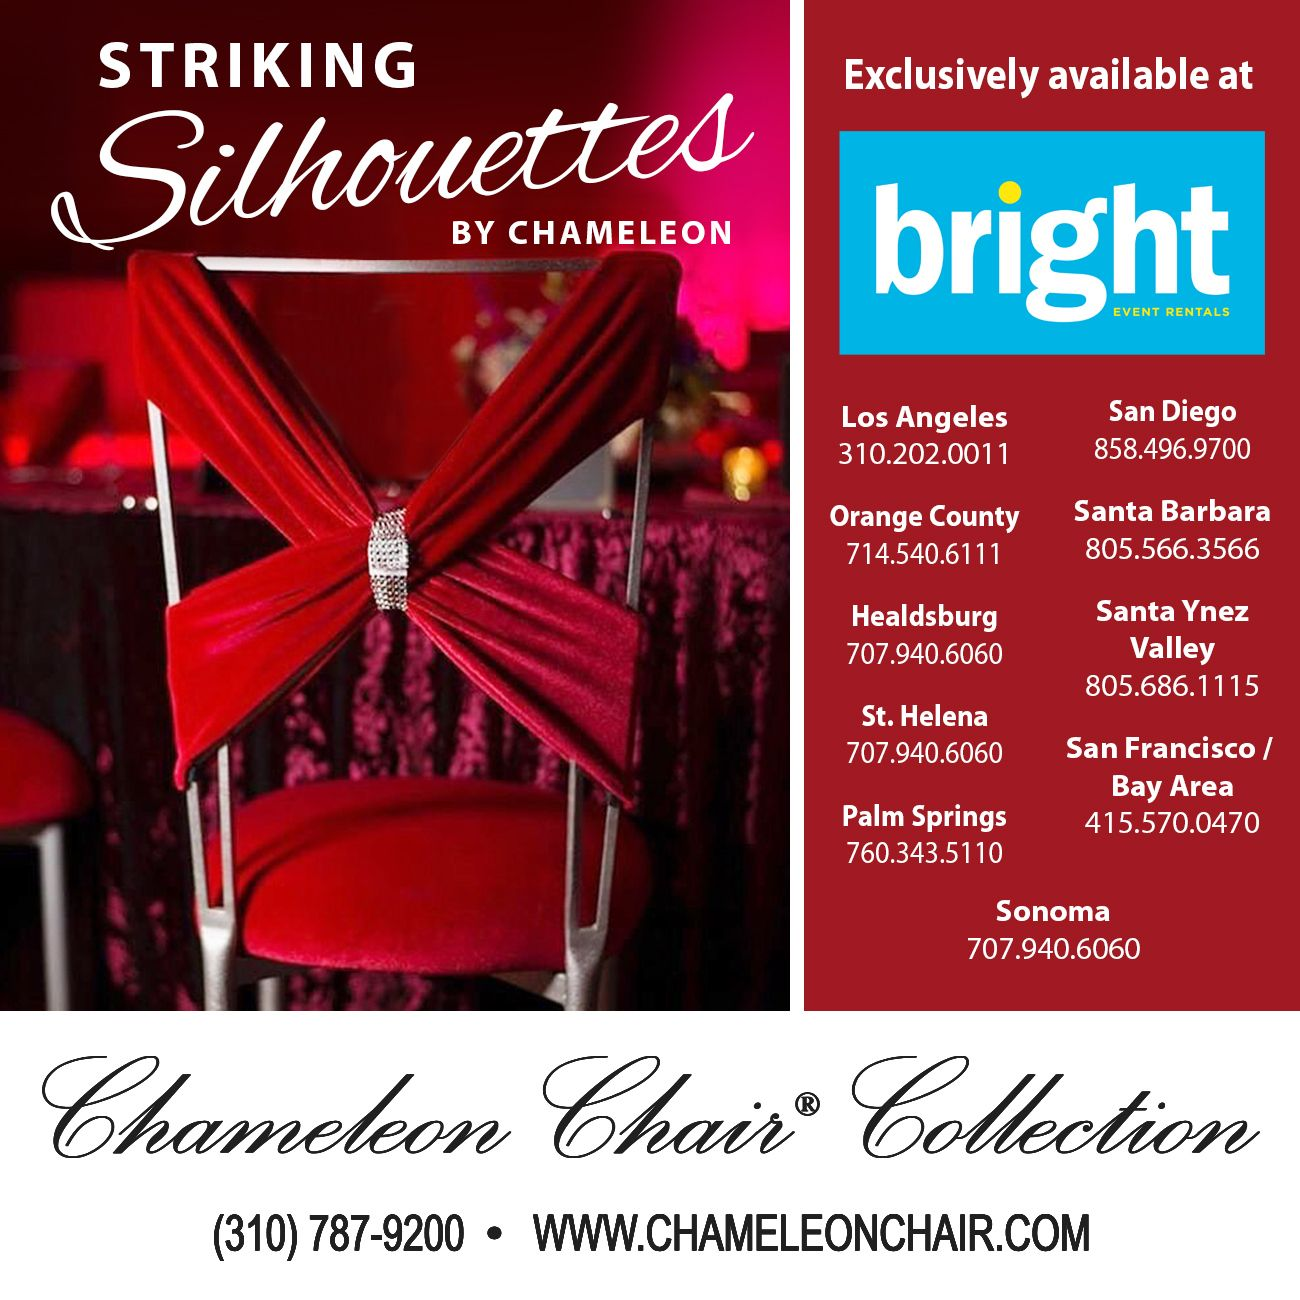 Bright Rentals Really Knows How To Throw A Party Visit Their Locations In California For Exclusive Access To Chameleon Chair S Versati Throw A Party Palm Springs Orange County